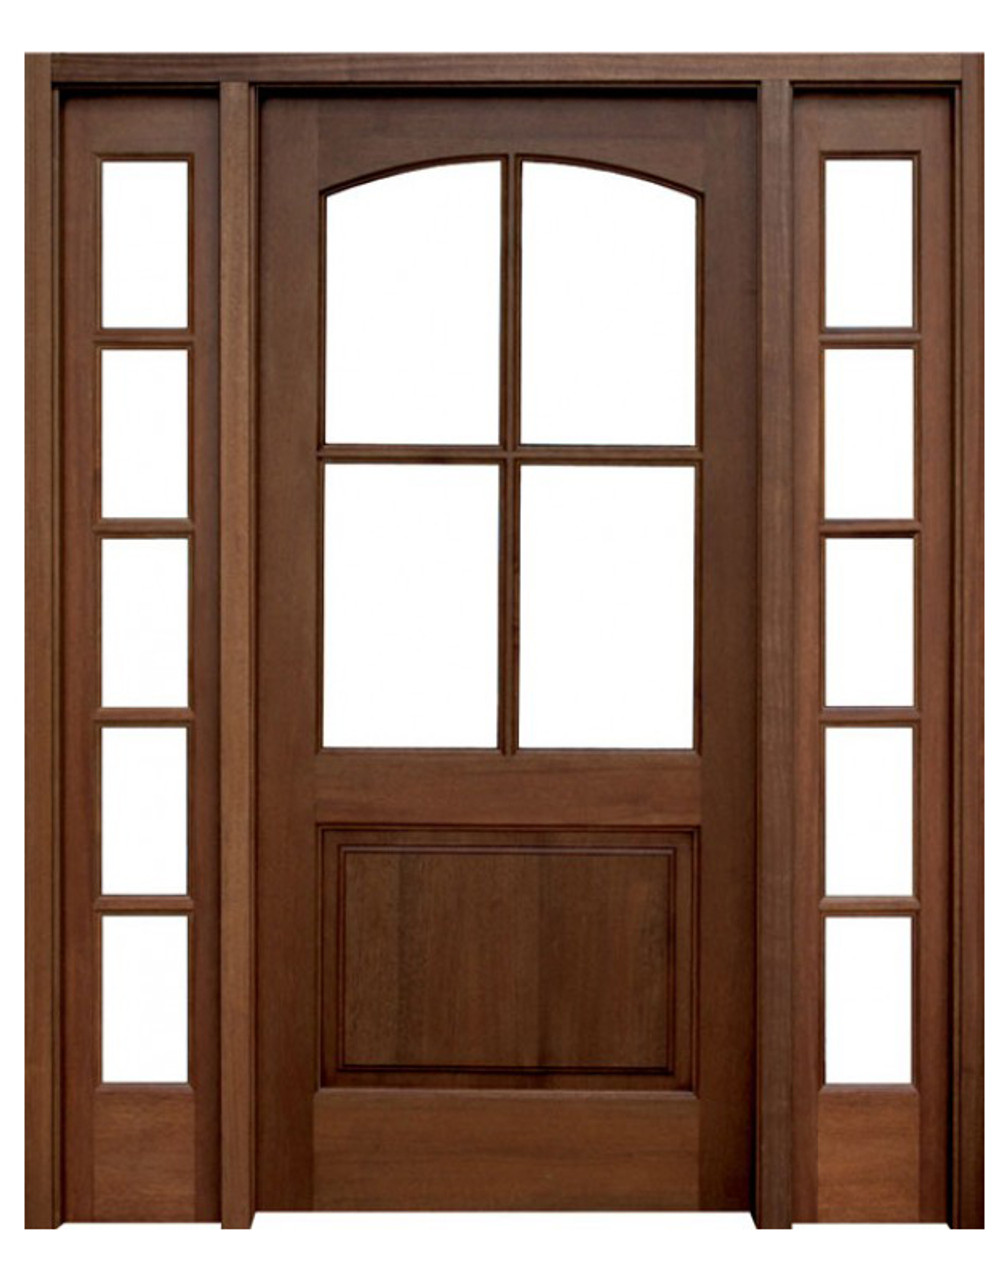 Mahogany Brentwood Single Wood Entry Door With 2 Sidelights By Door Stores Of America Shop Doors And Home Hardware